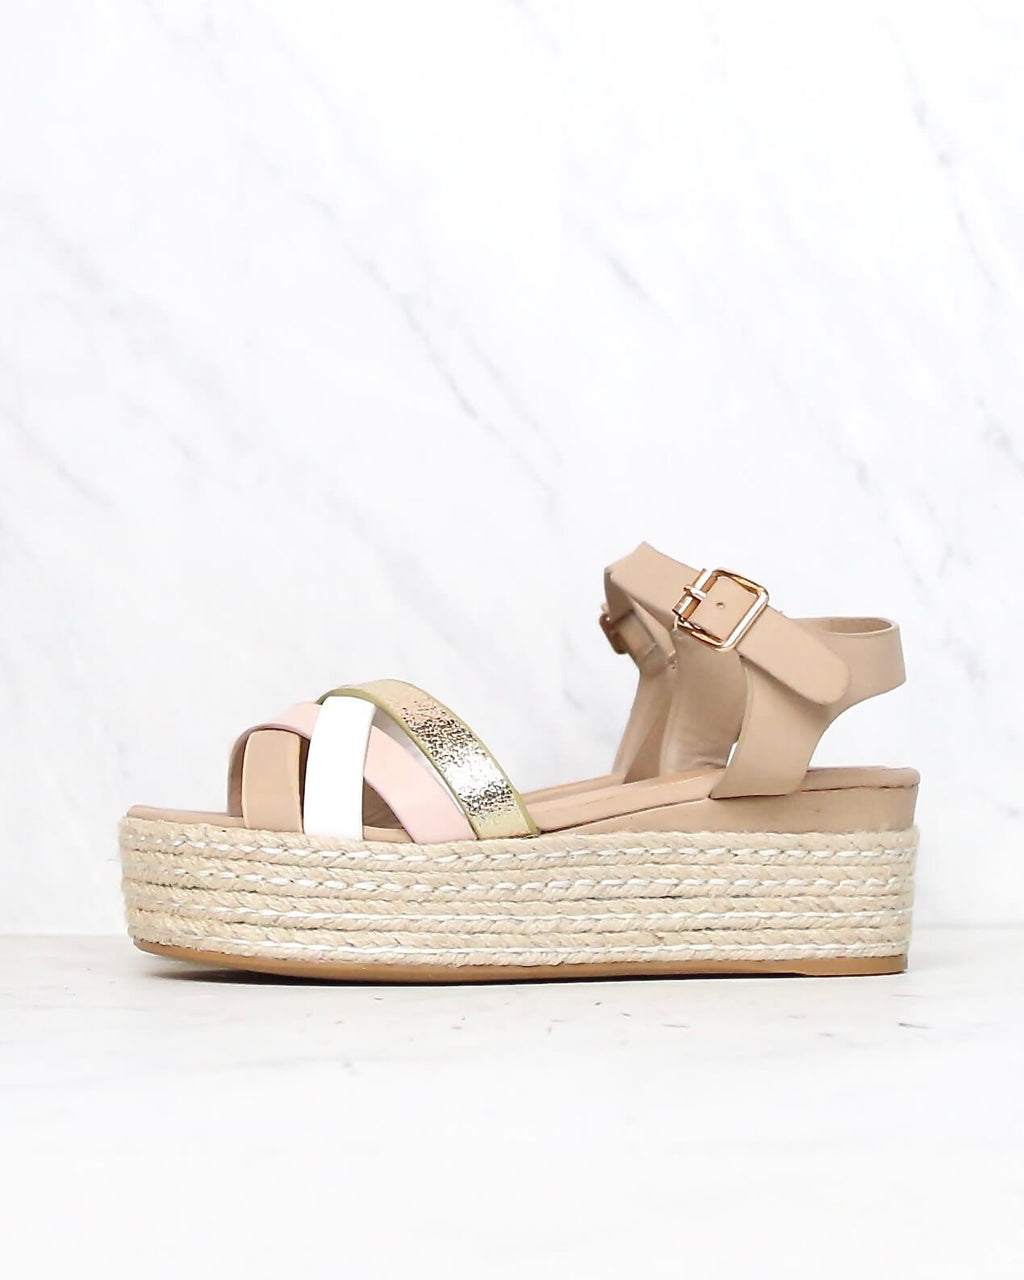 Criss Cross Strappy Band Espadrilles Platform Sandal with Ankle Strap - Blush Multi